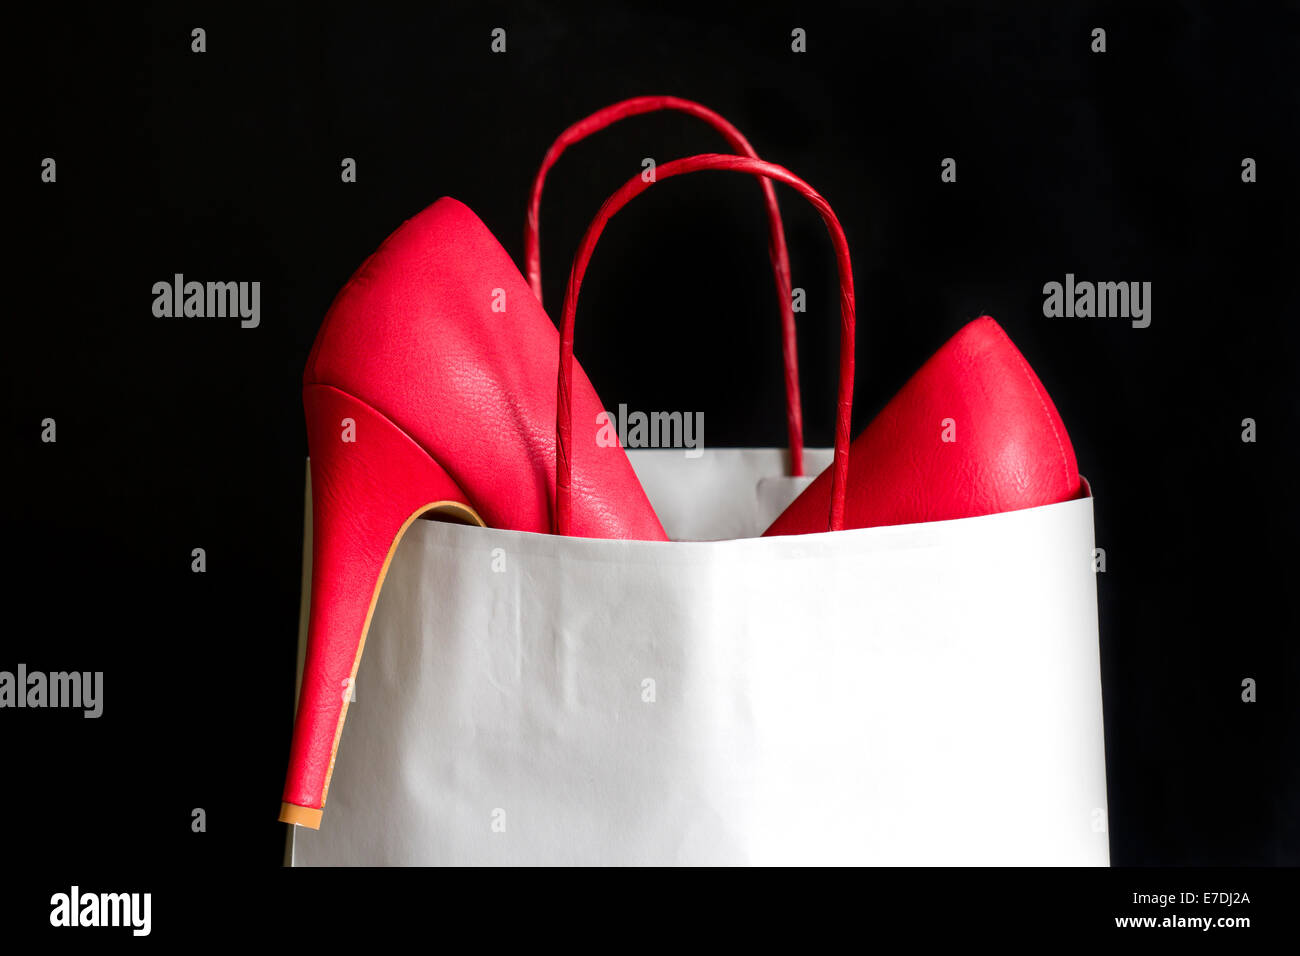 High heels red shoes in shopping bag against black - Stock Image